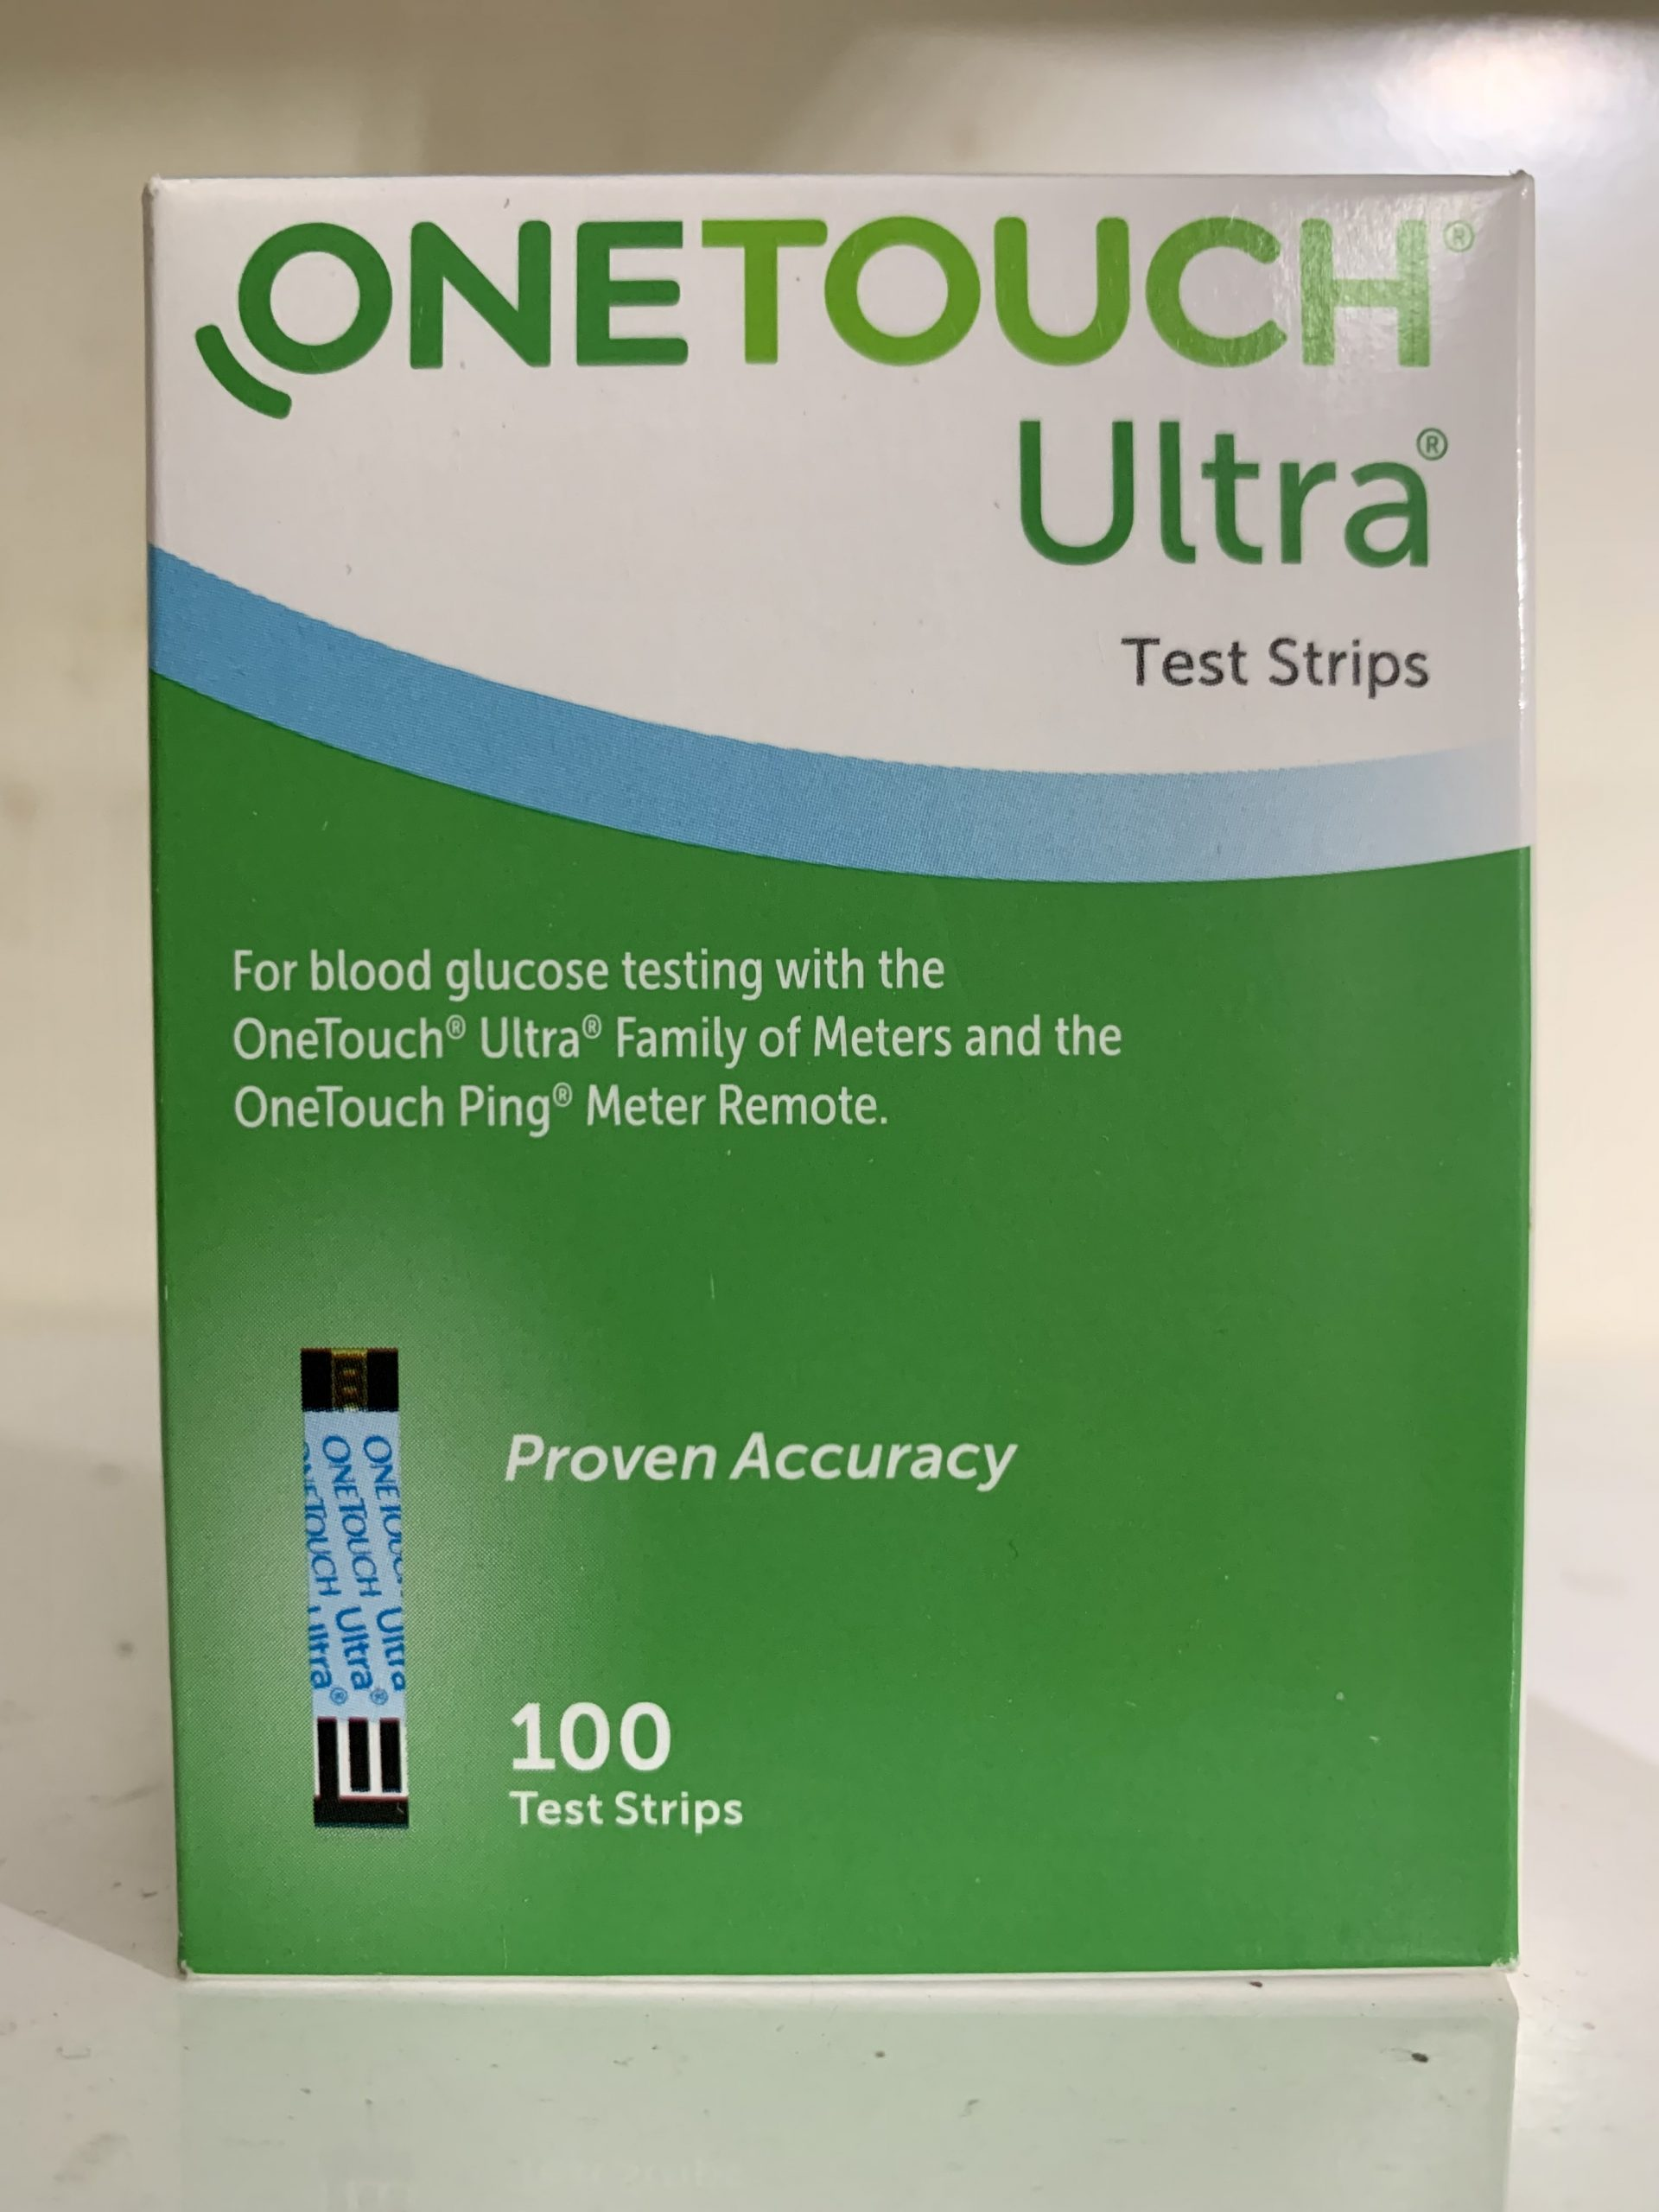 #1 Best Place to Sell Diabetic Test Strips